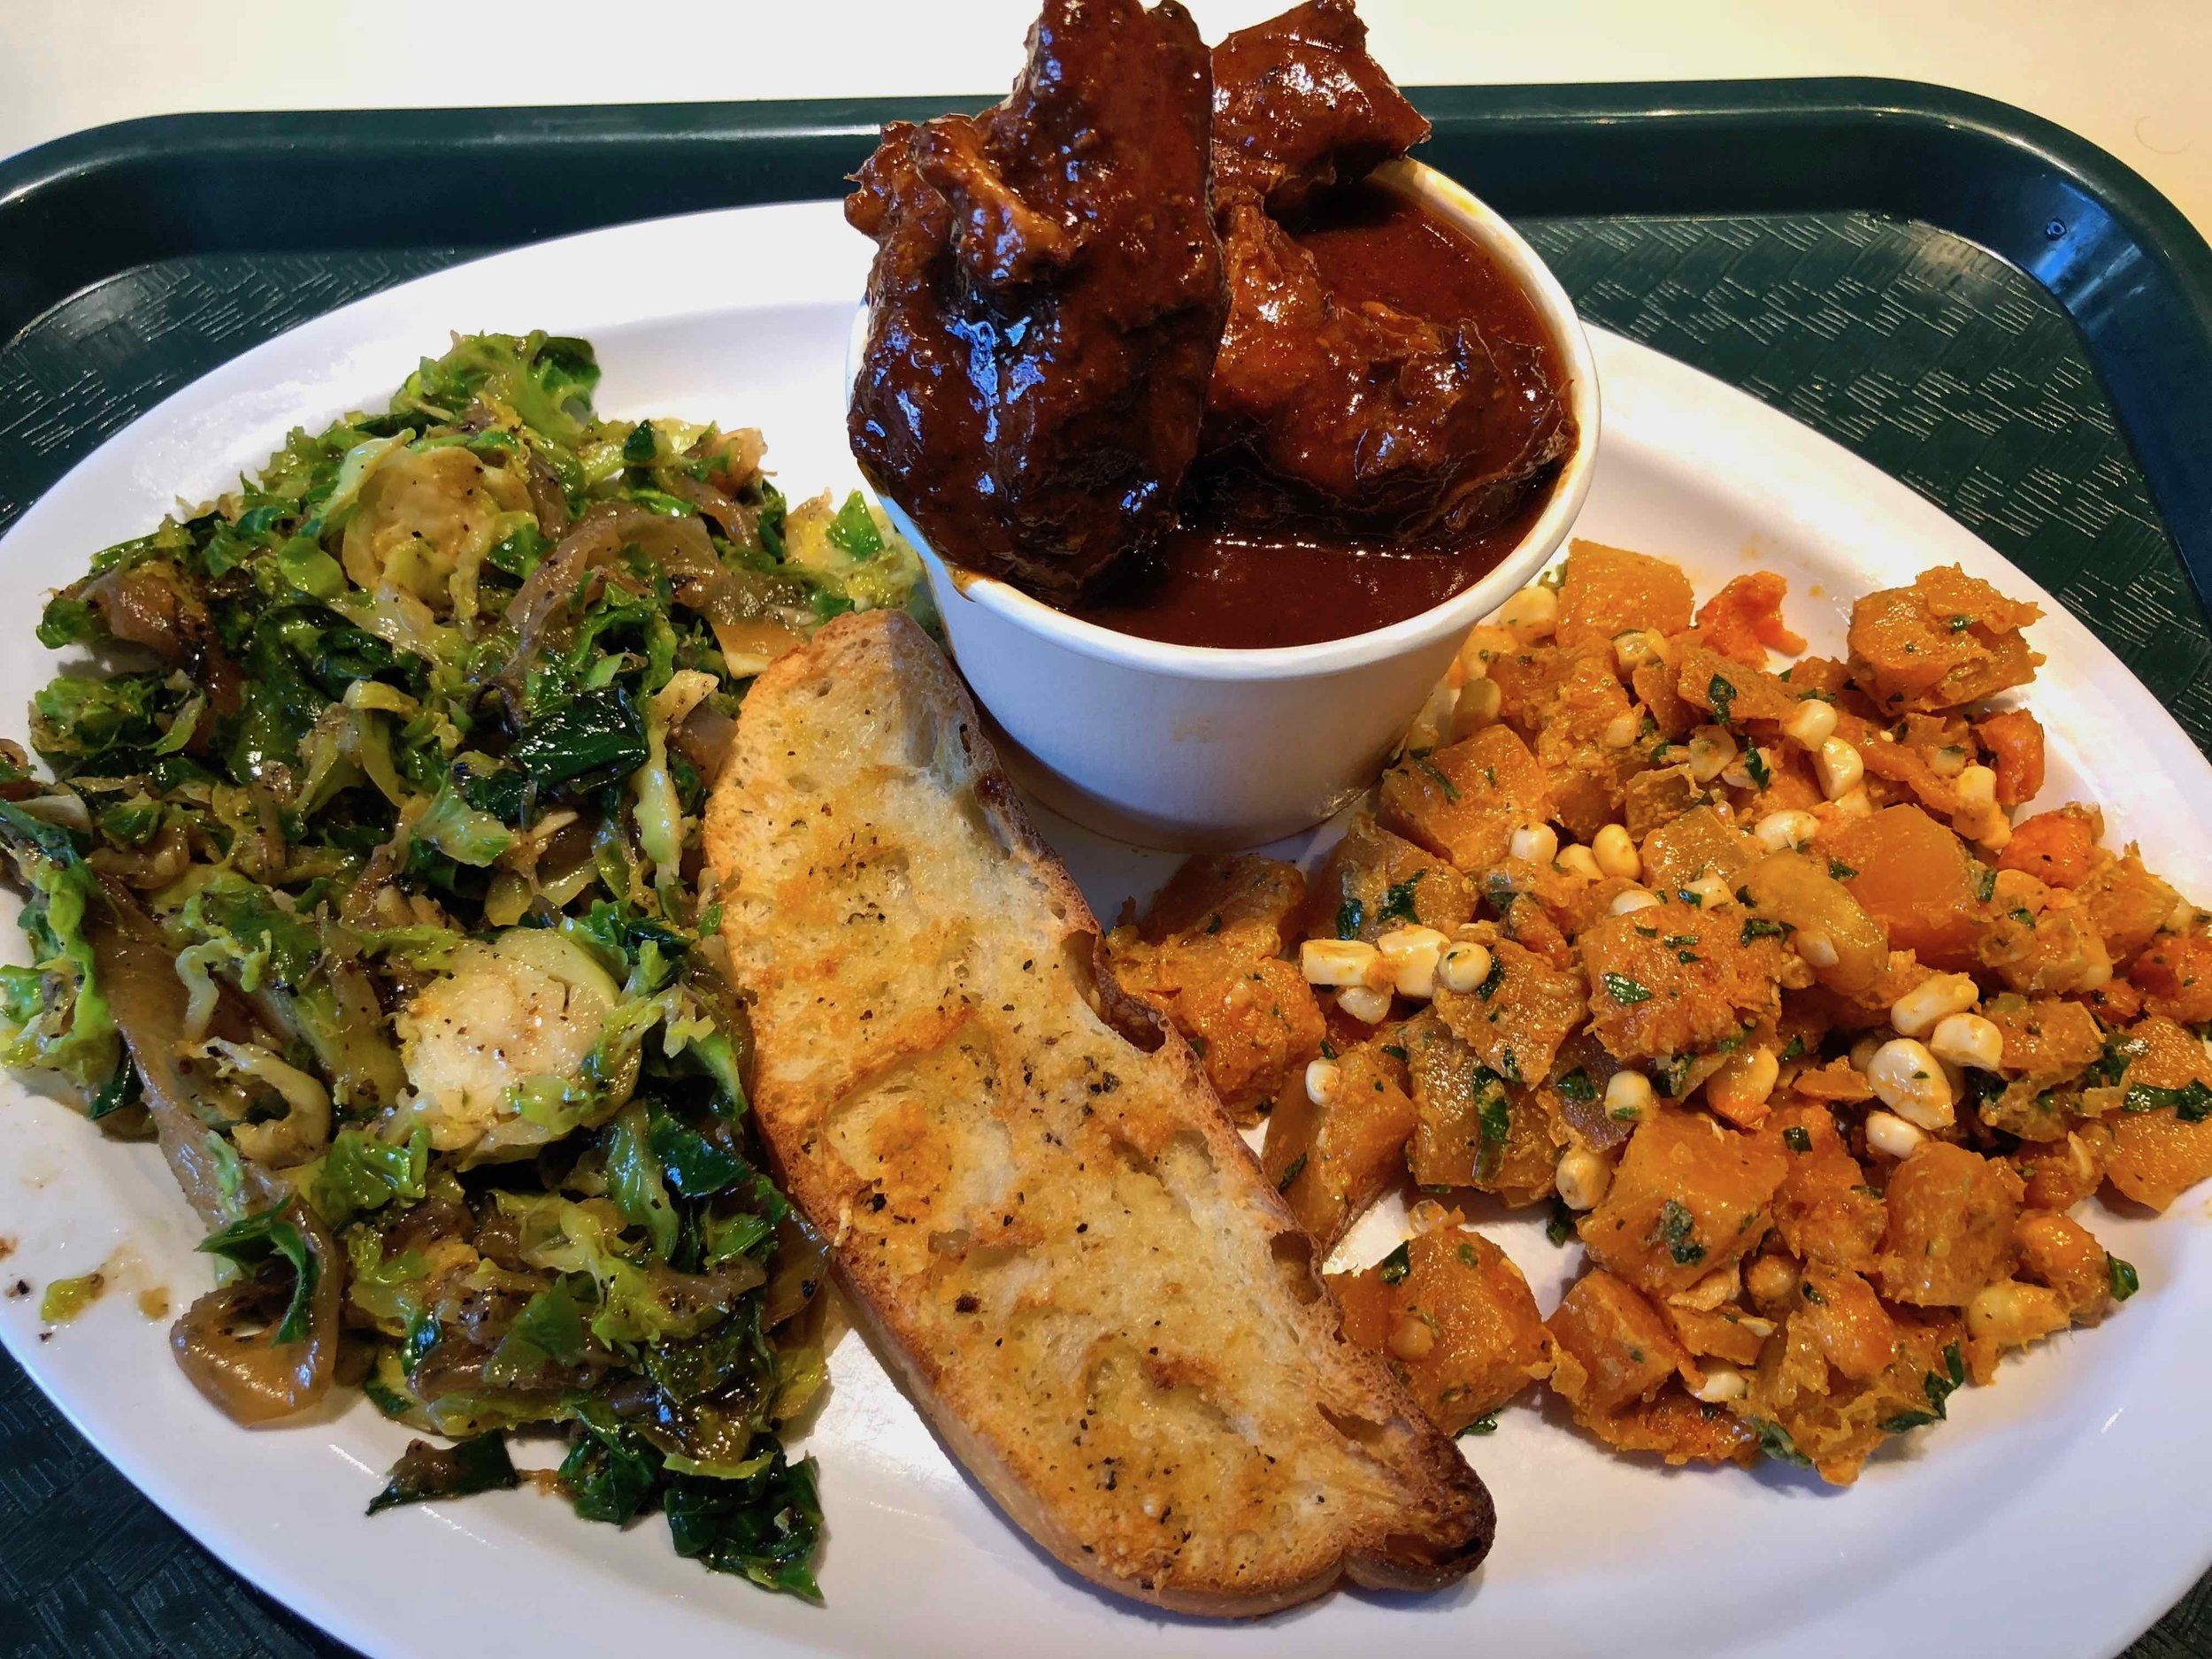 bbq brisket, brussels sprouts, squash and corn